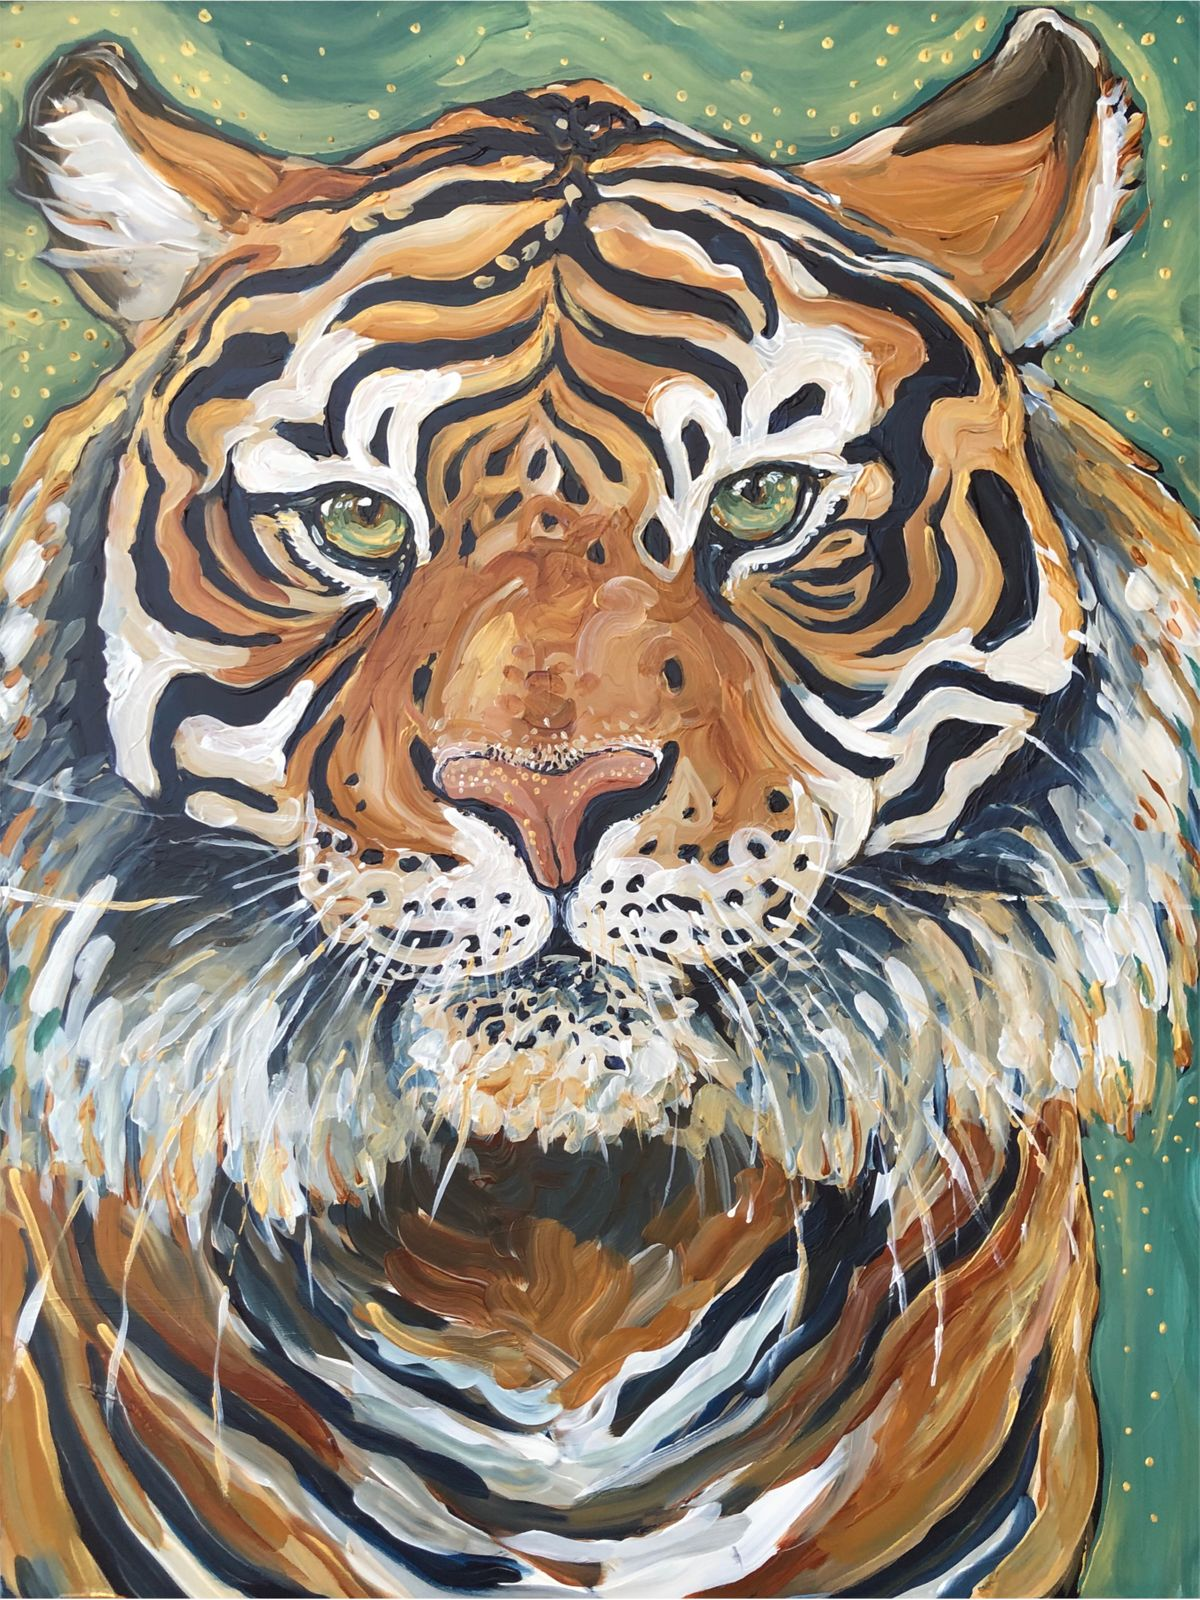 Kate_Fitzgerald_Tiger_Austin_Art_Austin_gifts.jpeg